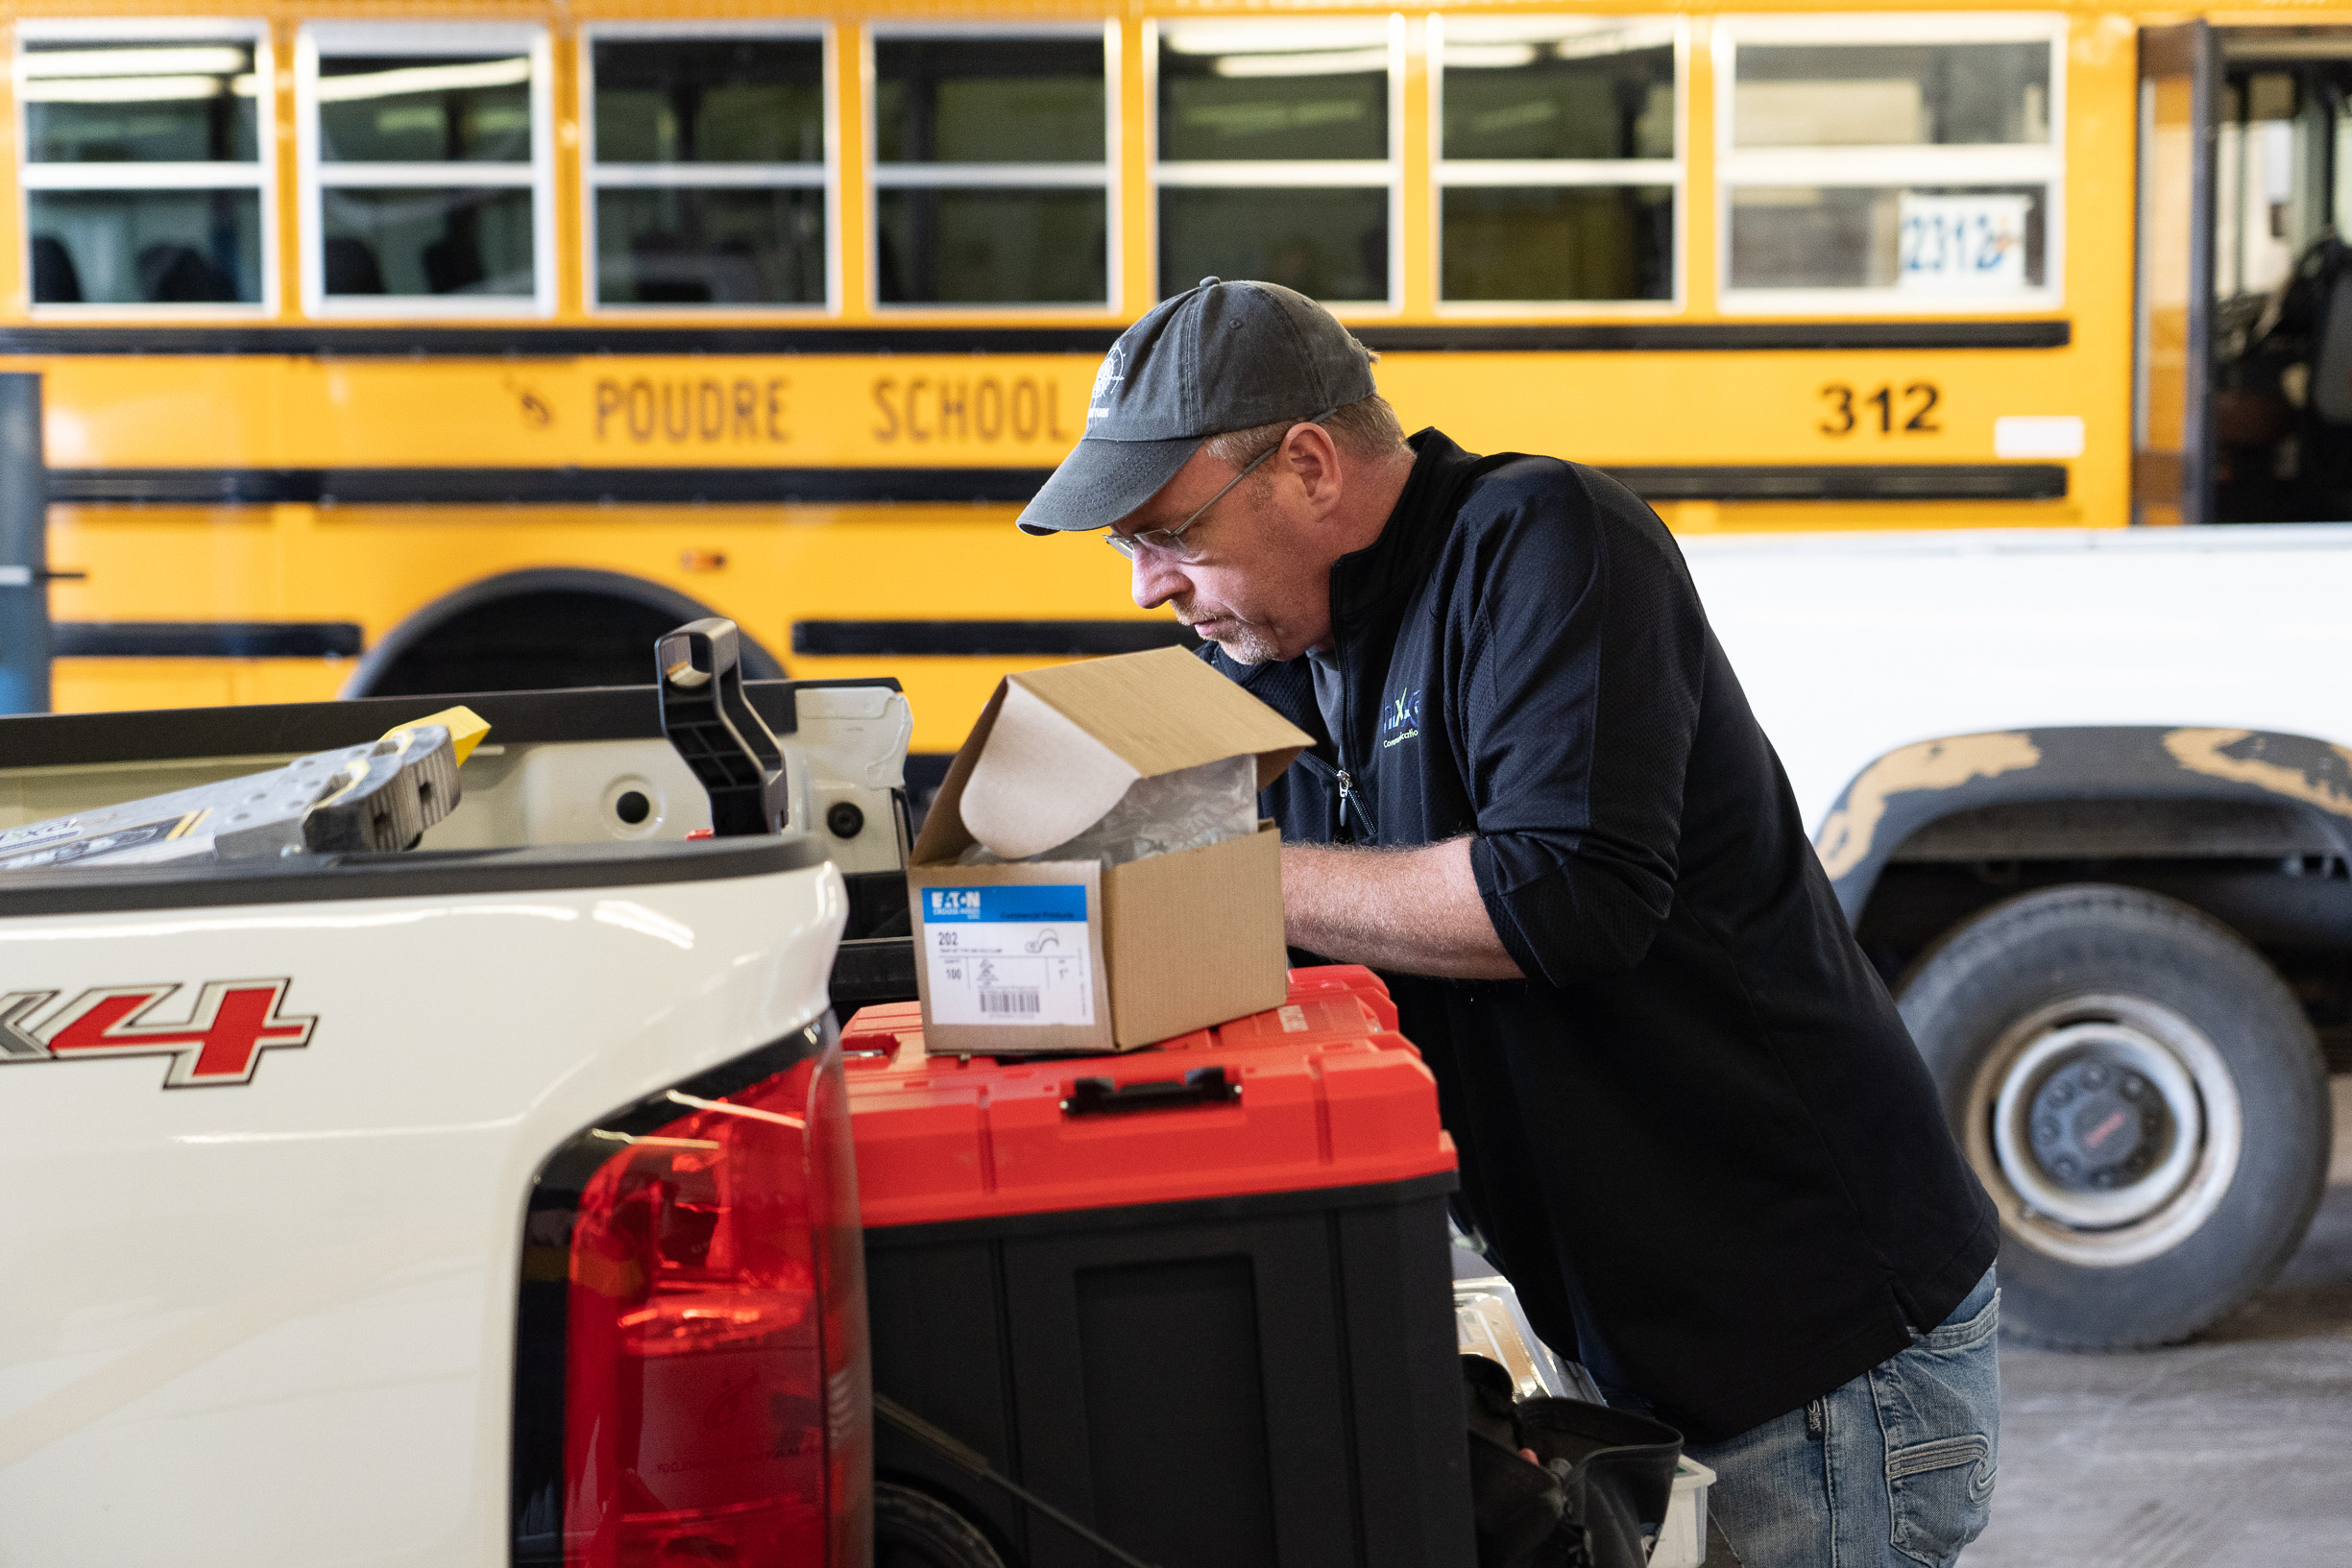 Staff work on a hotspot vehicle to make Internet available to students who don't have it.